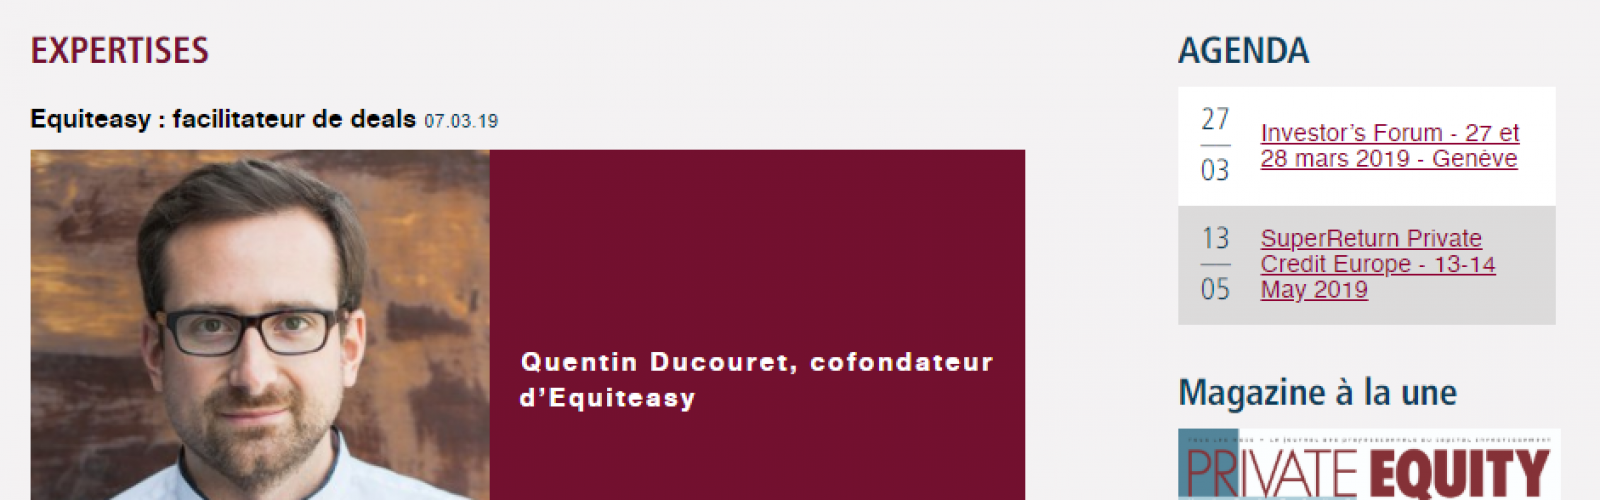 Equiteasy : Facilitateur de deals